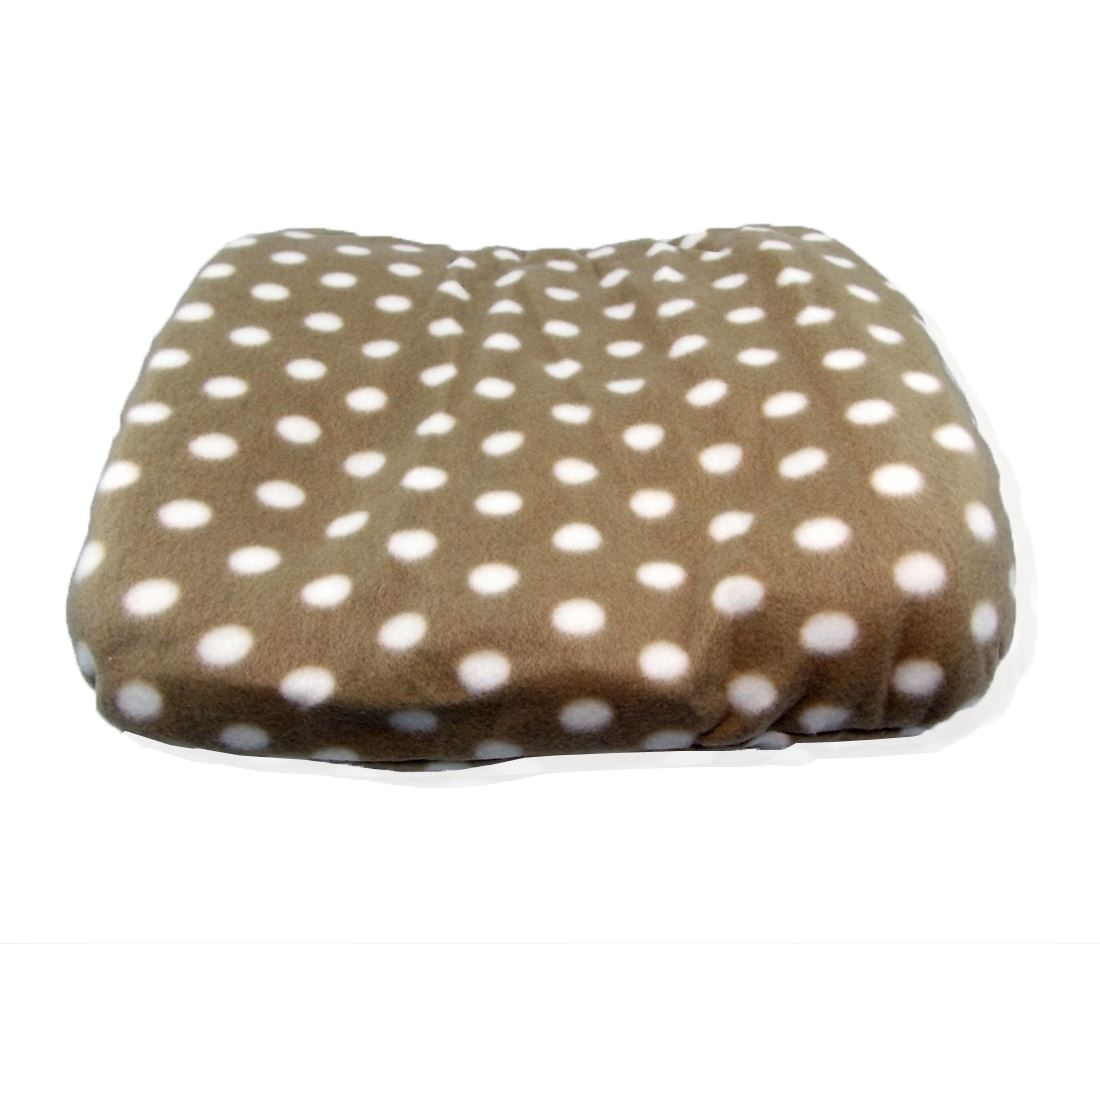 (Large) Soft Luxury Comfy Dog Puppy Cat Pet Bed Cushion Fur Fleece UK 2